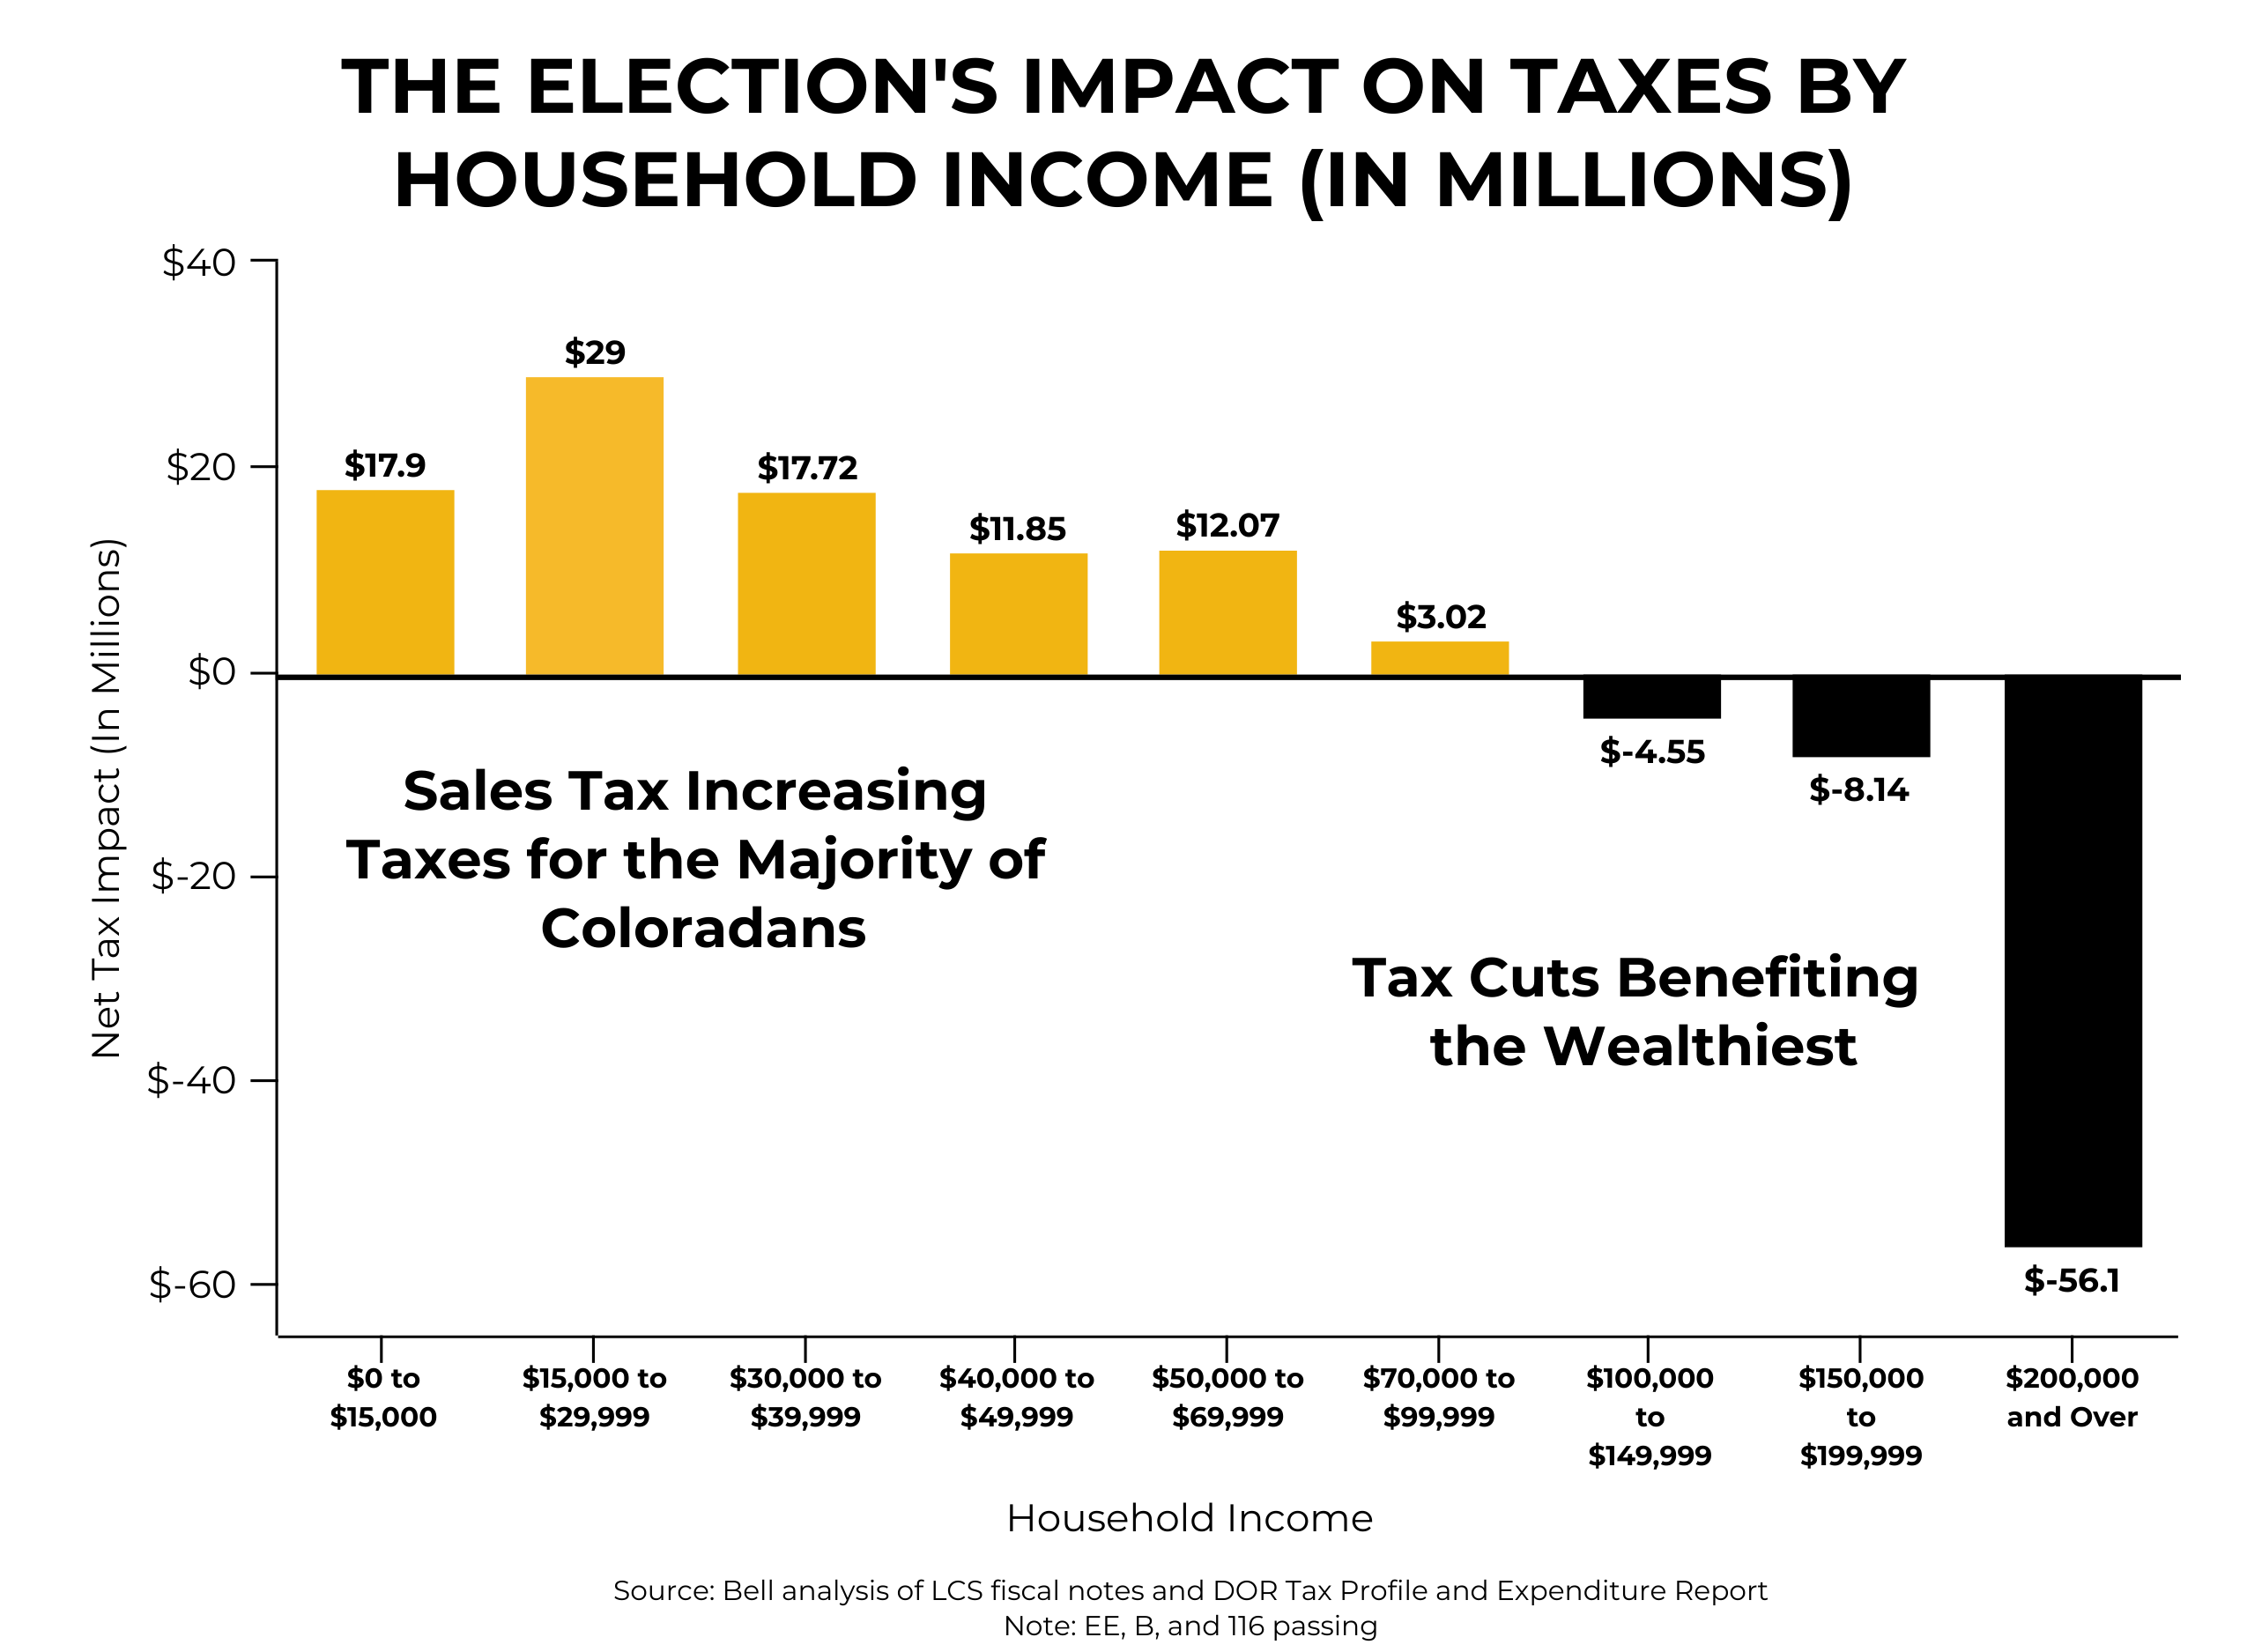 Graph in black and yellow showing election's impact on taxes based on household income.